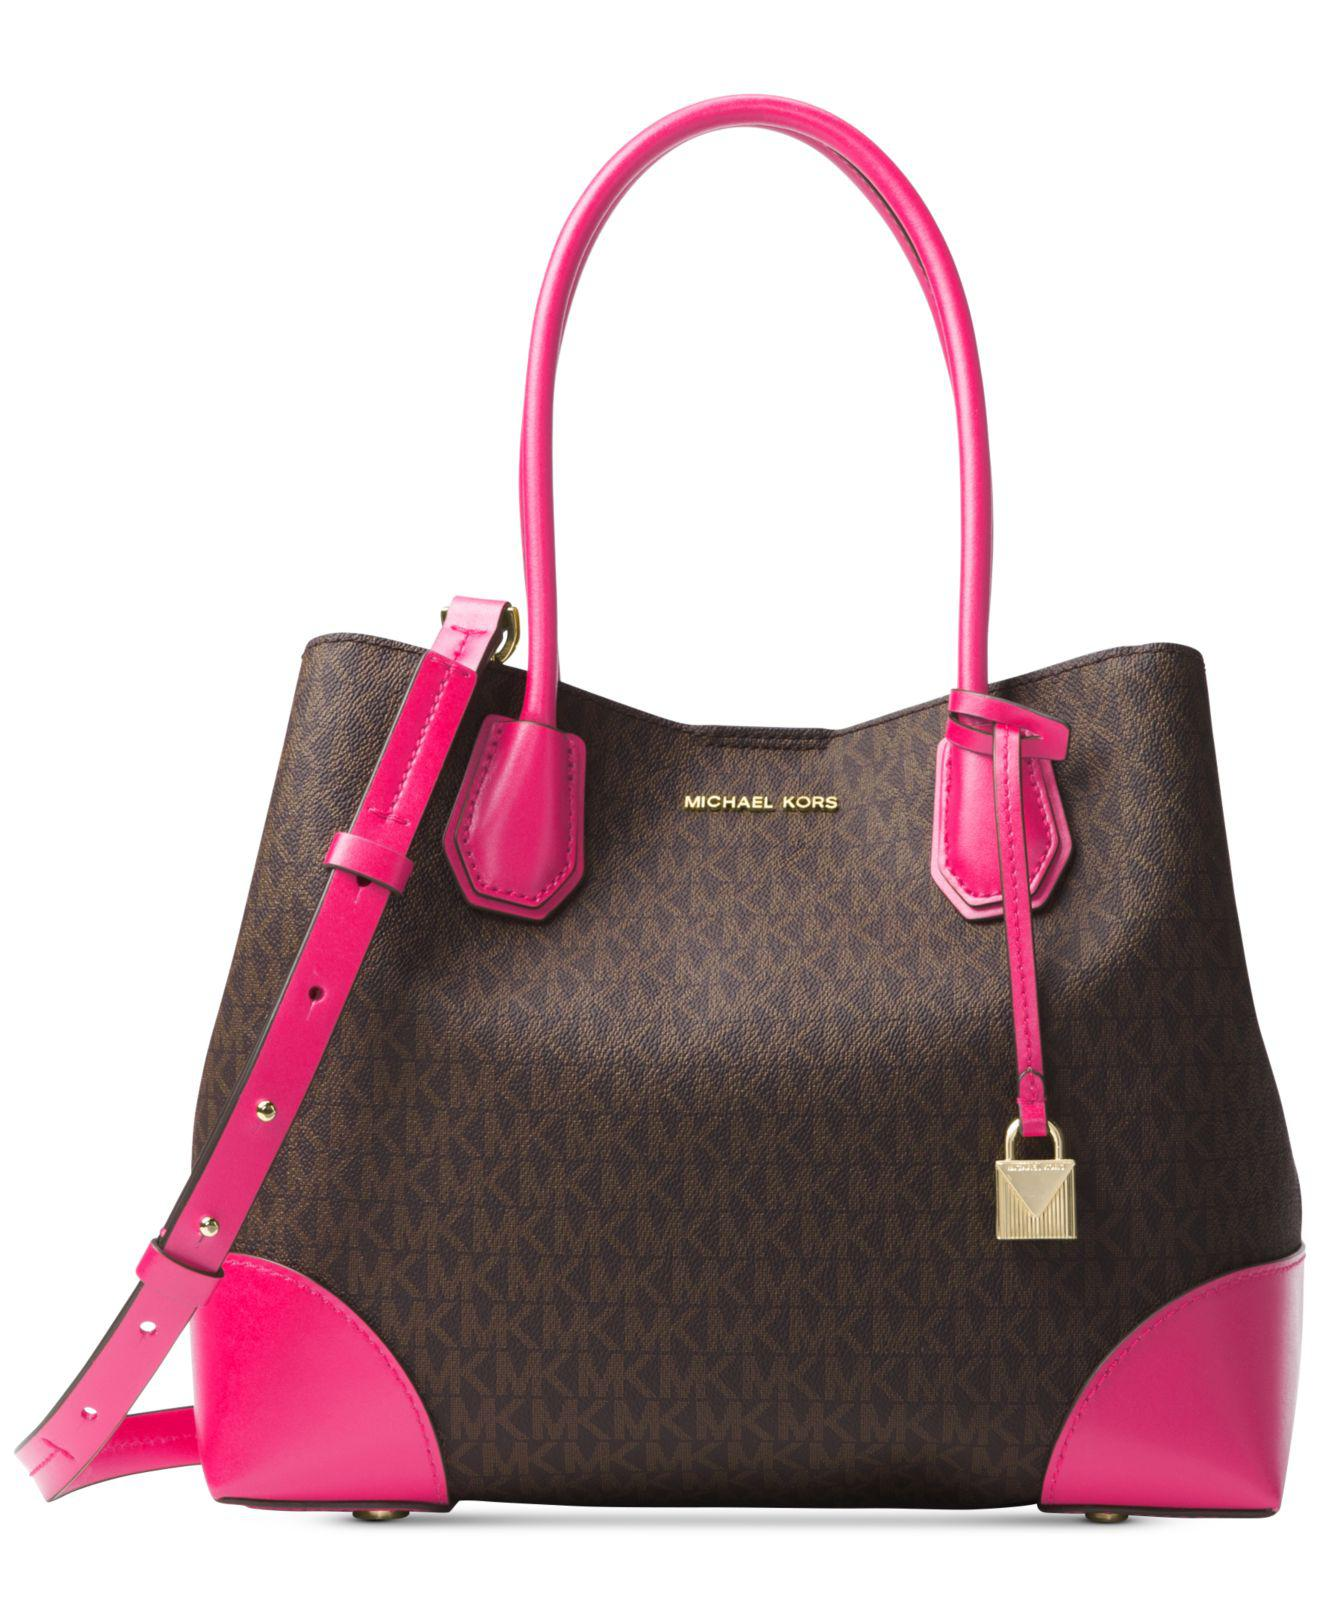 7d31558db36b ... norway lyst michael kors mercer corner medium center zip tote in pink  16c1c 5504b